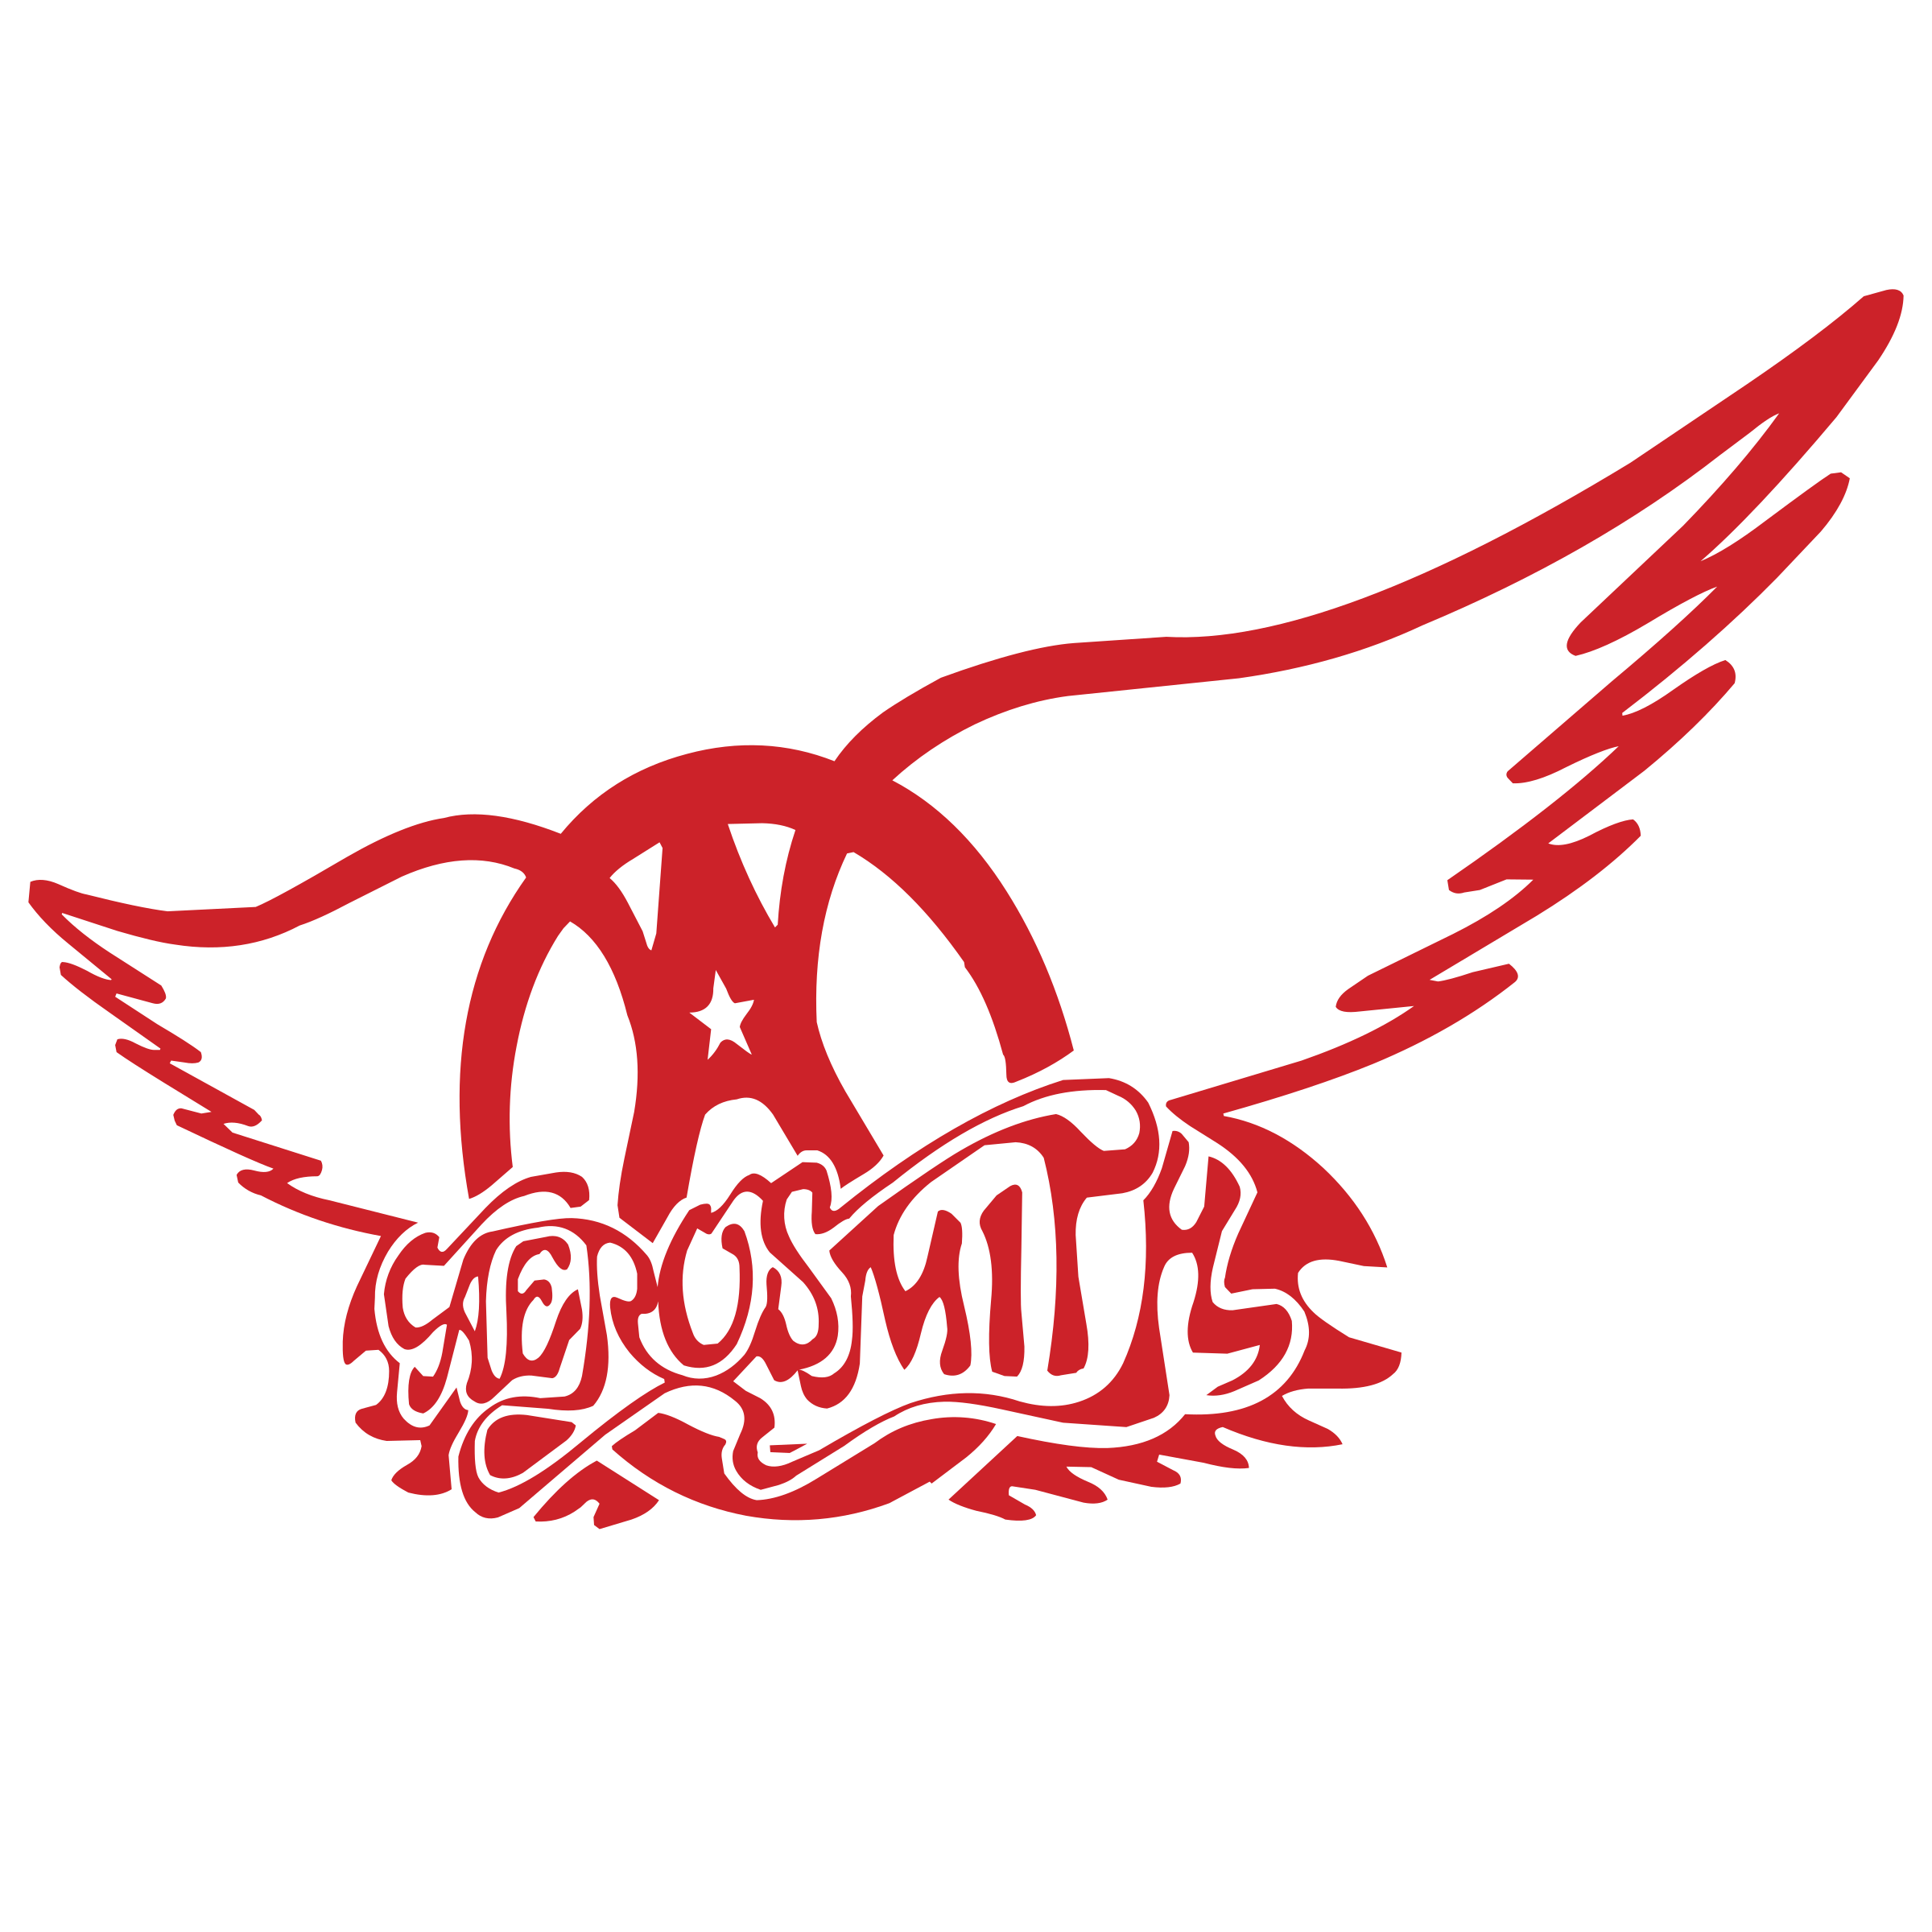 Aerosmith Logo Png Transparent Svg Vector Freebie Supply